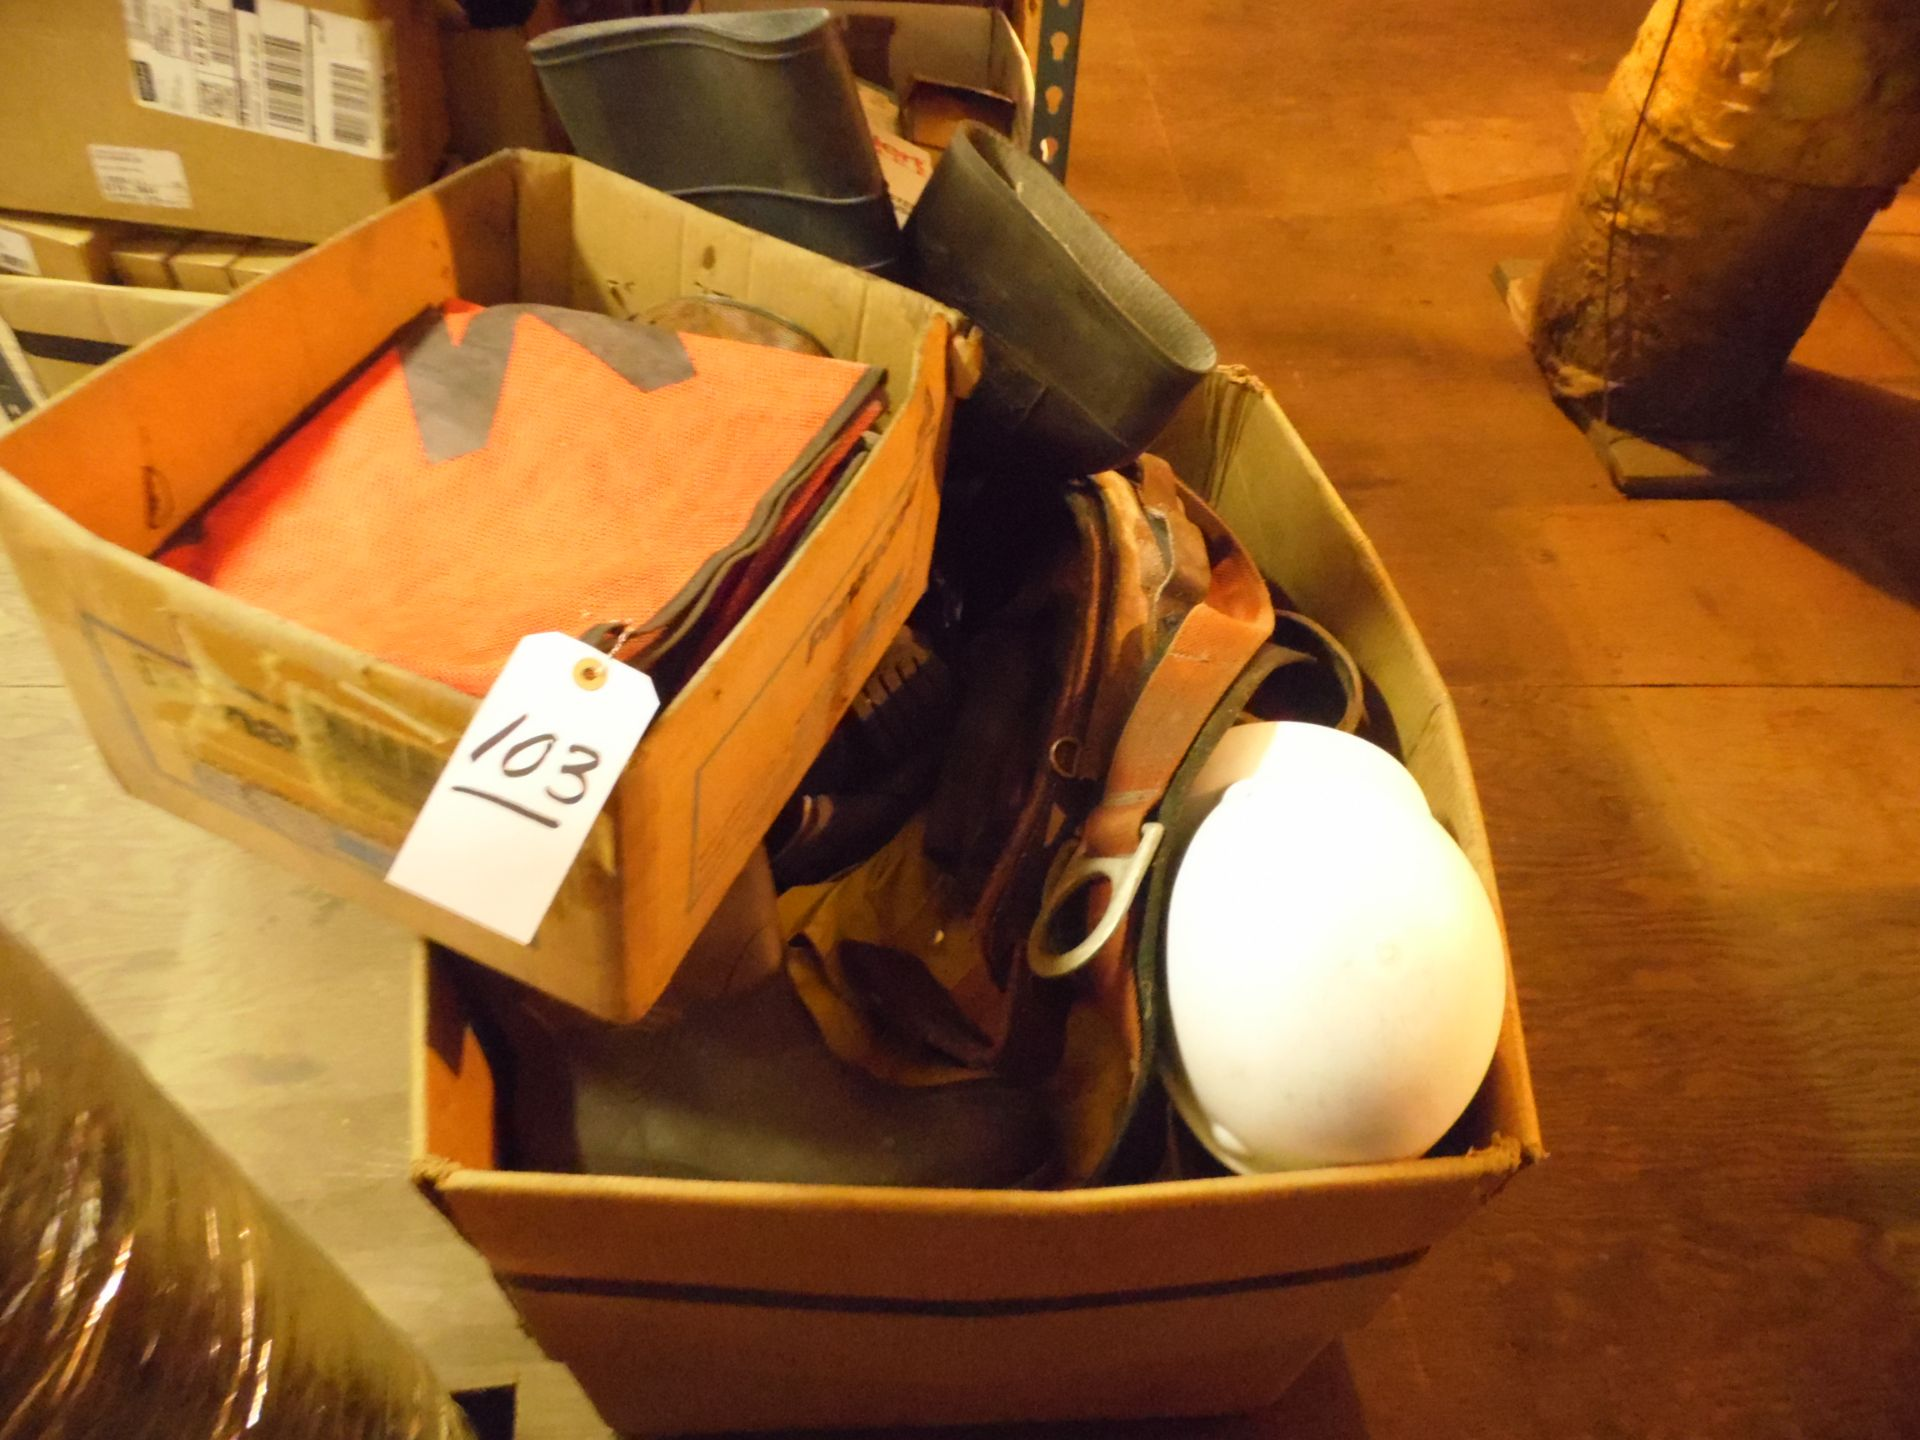 Lot 103 - SAFETY GEAR HARNESSES, BOOTS